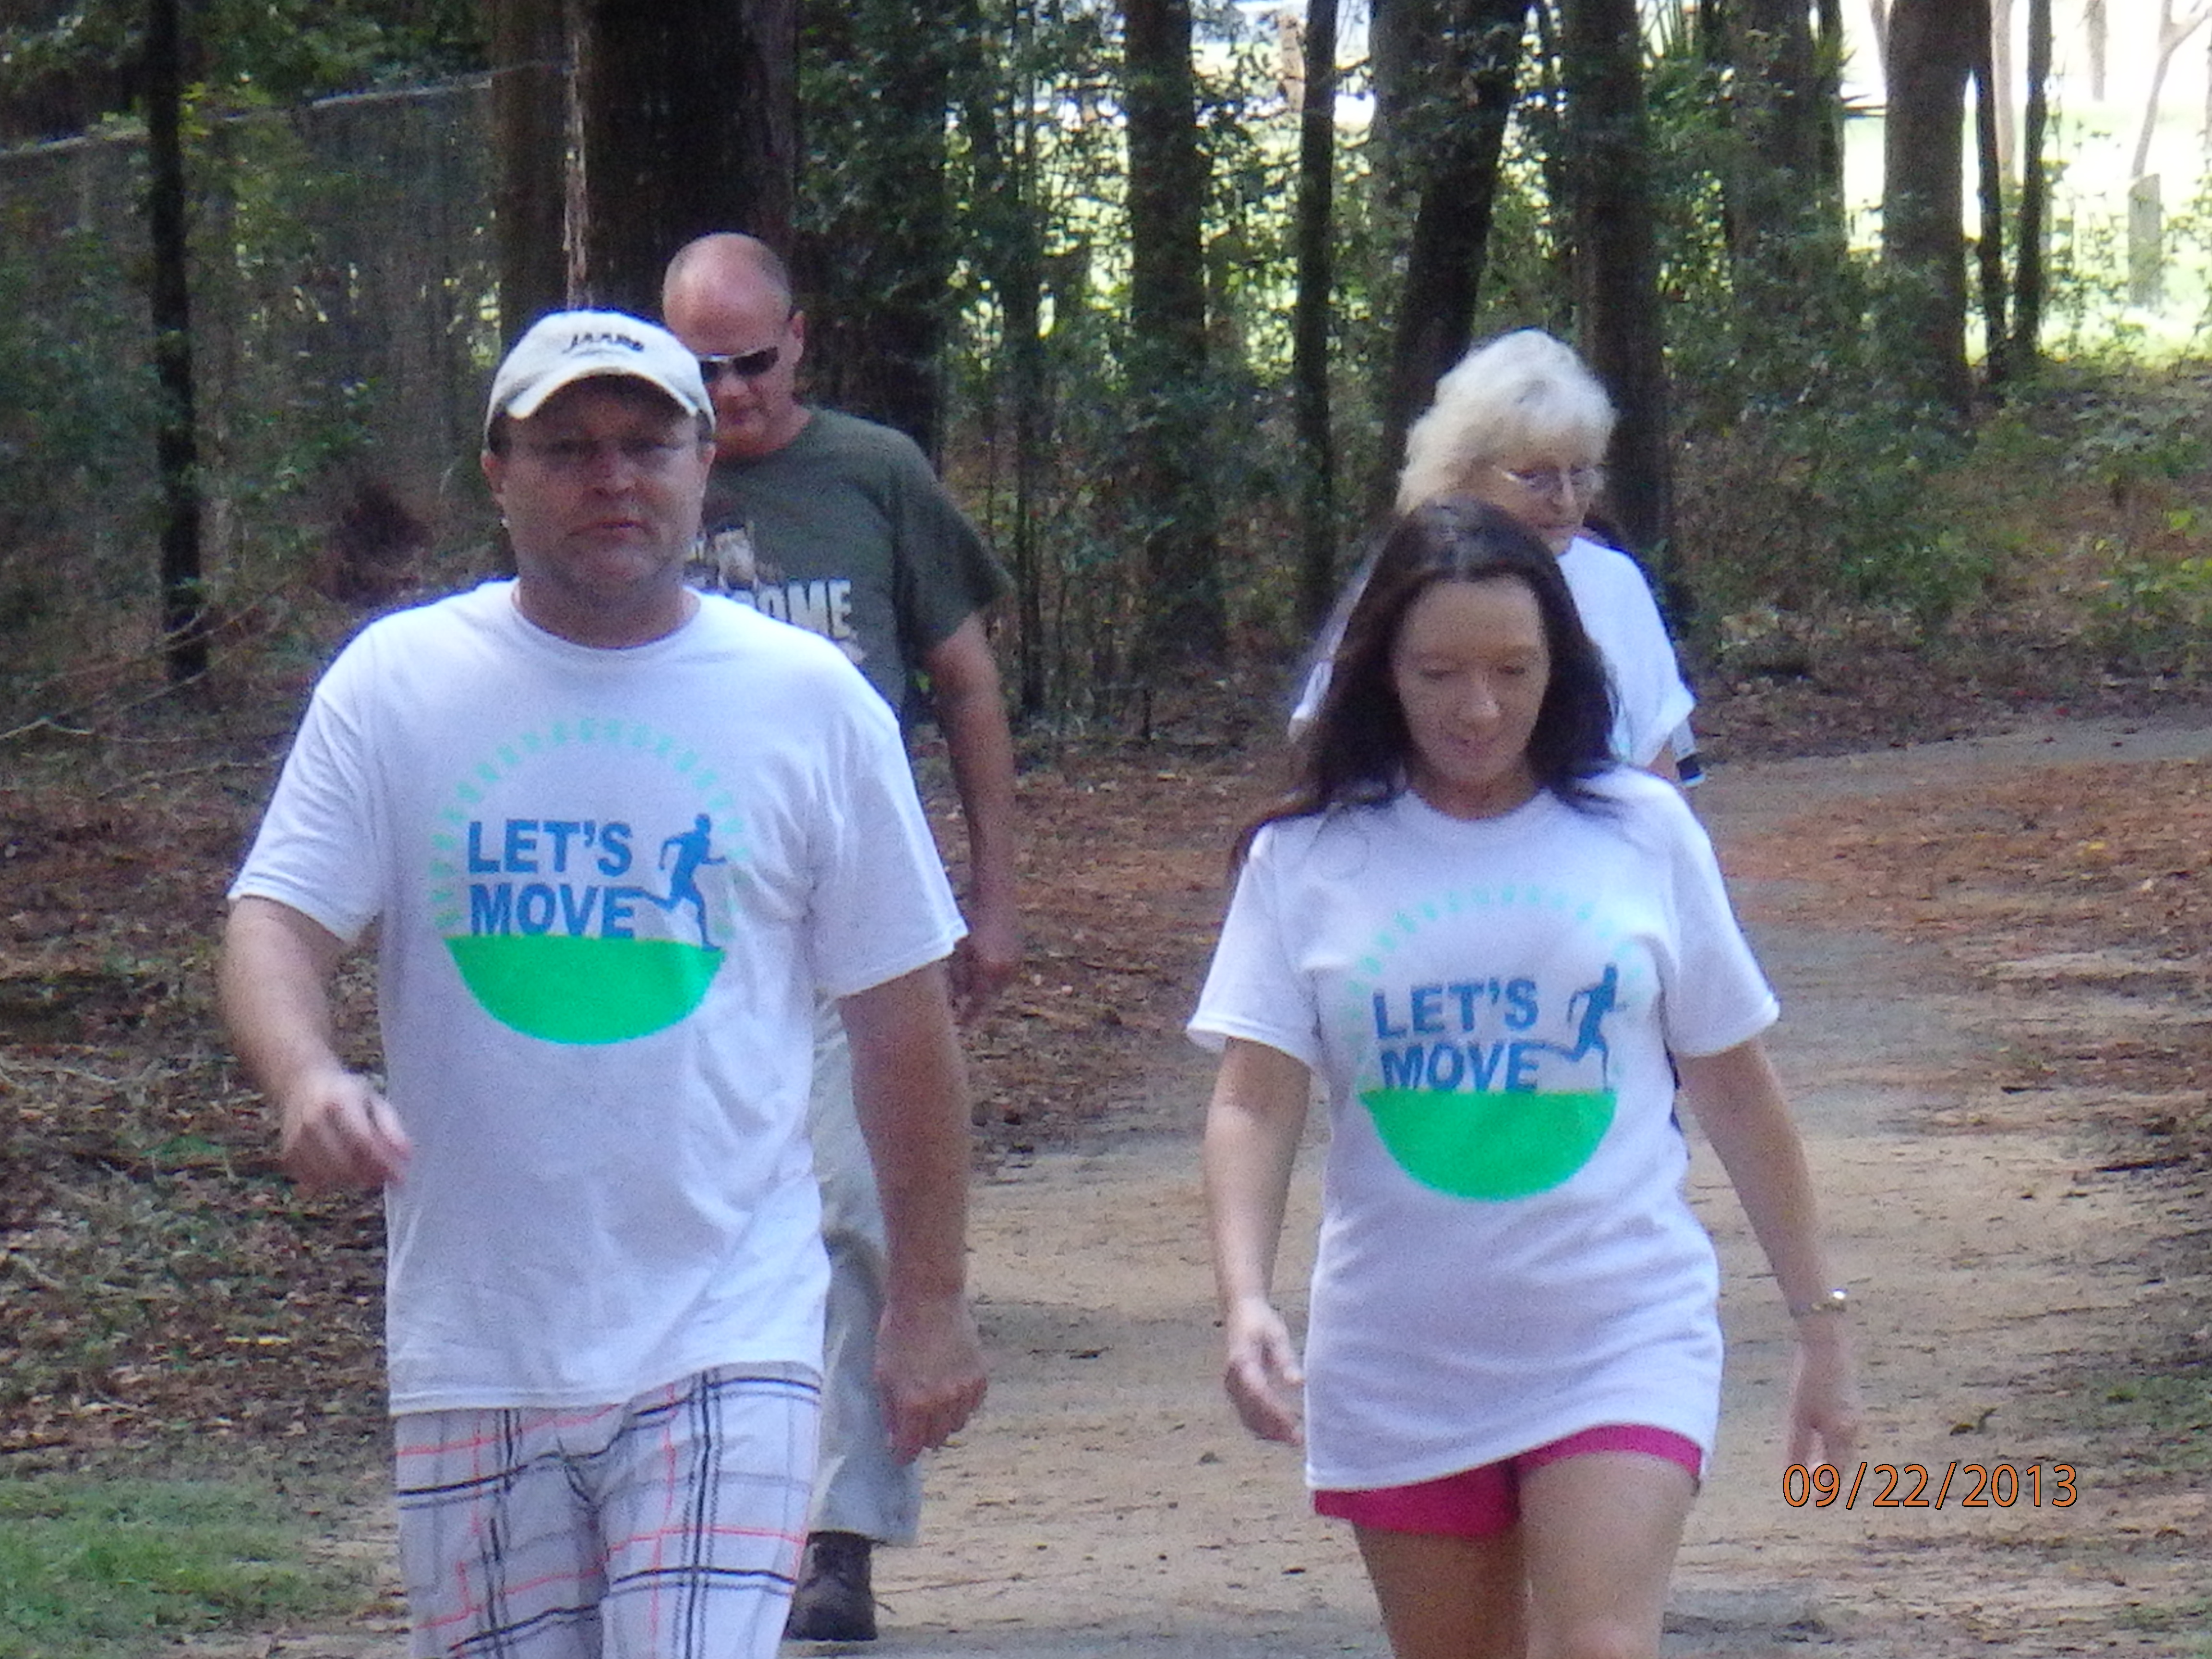 Let's Move 024.JPG